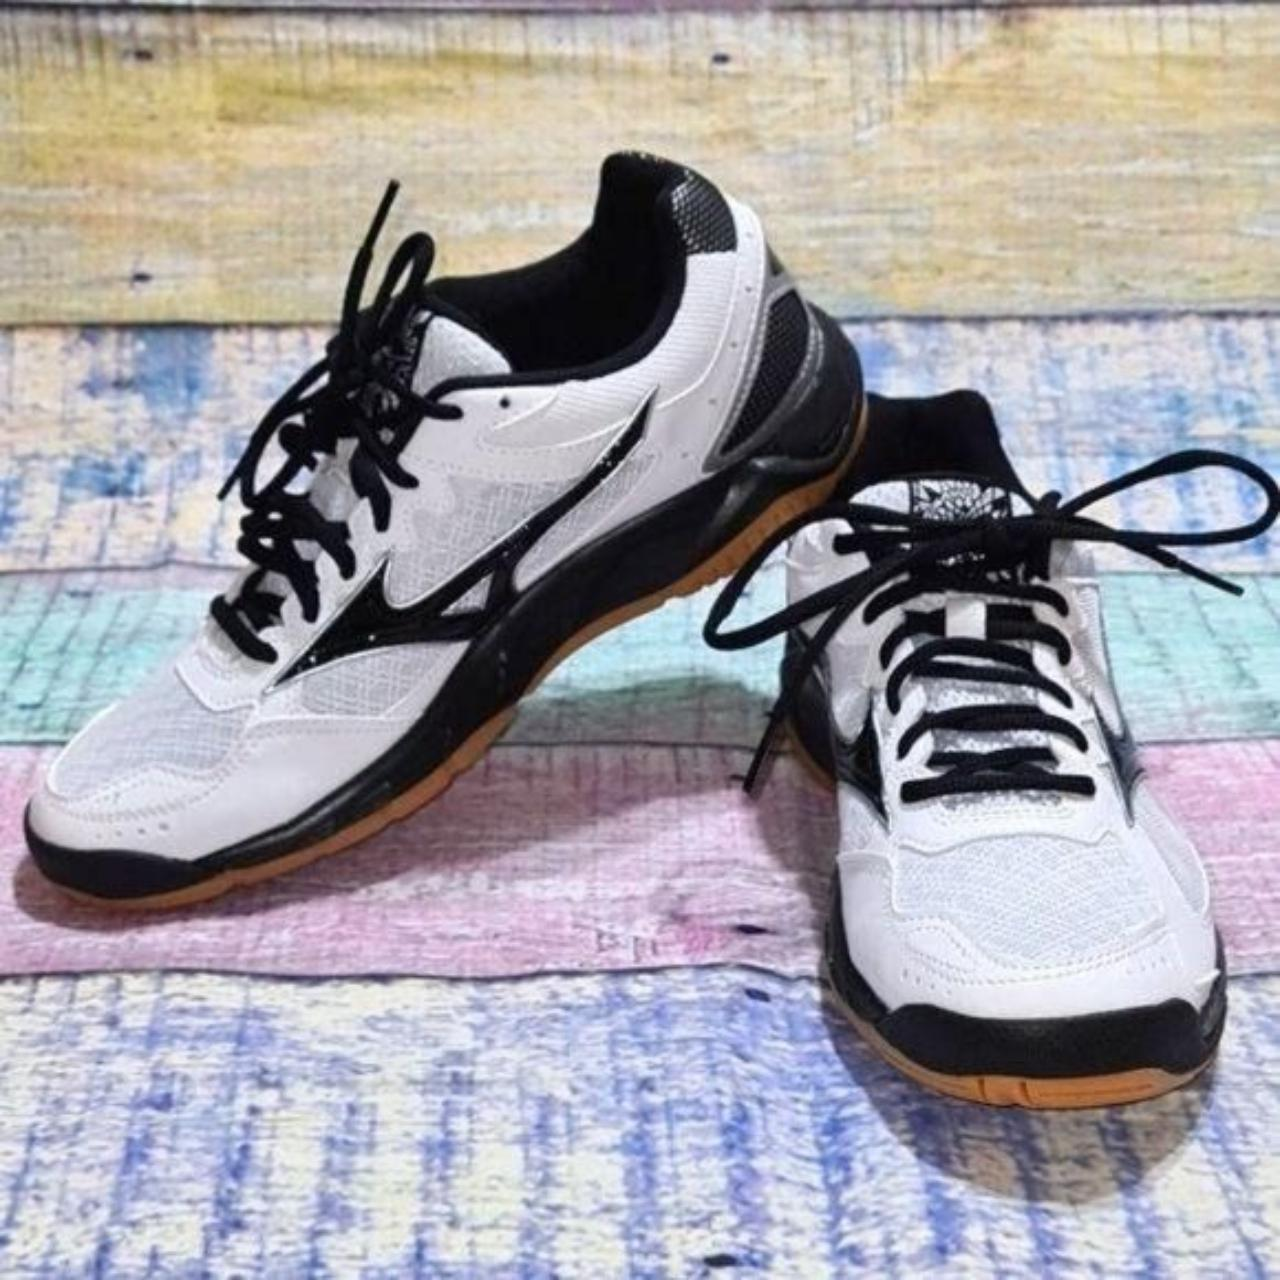 Product Image 1 - Mizuno Wave Supersonic Volleyball Shoes  White